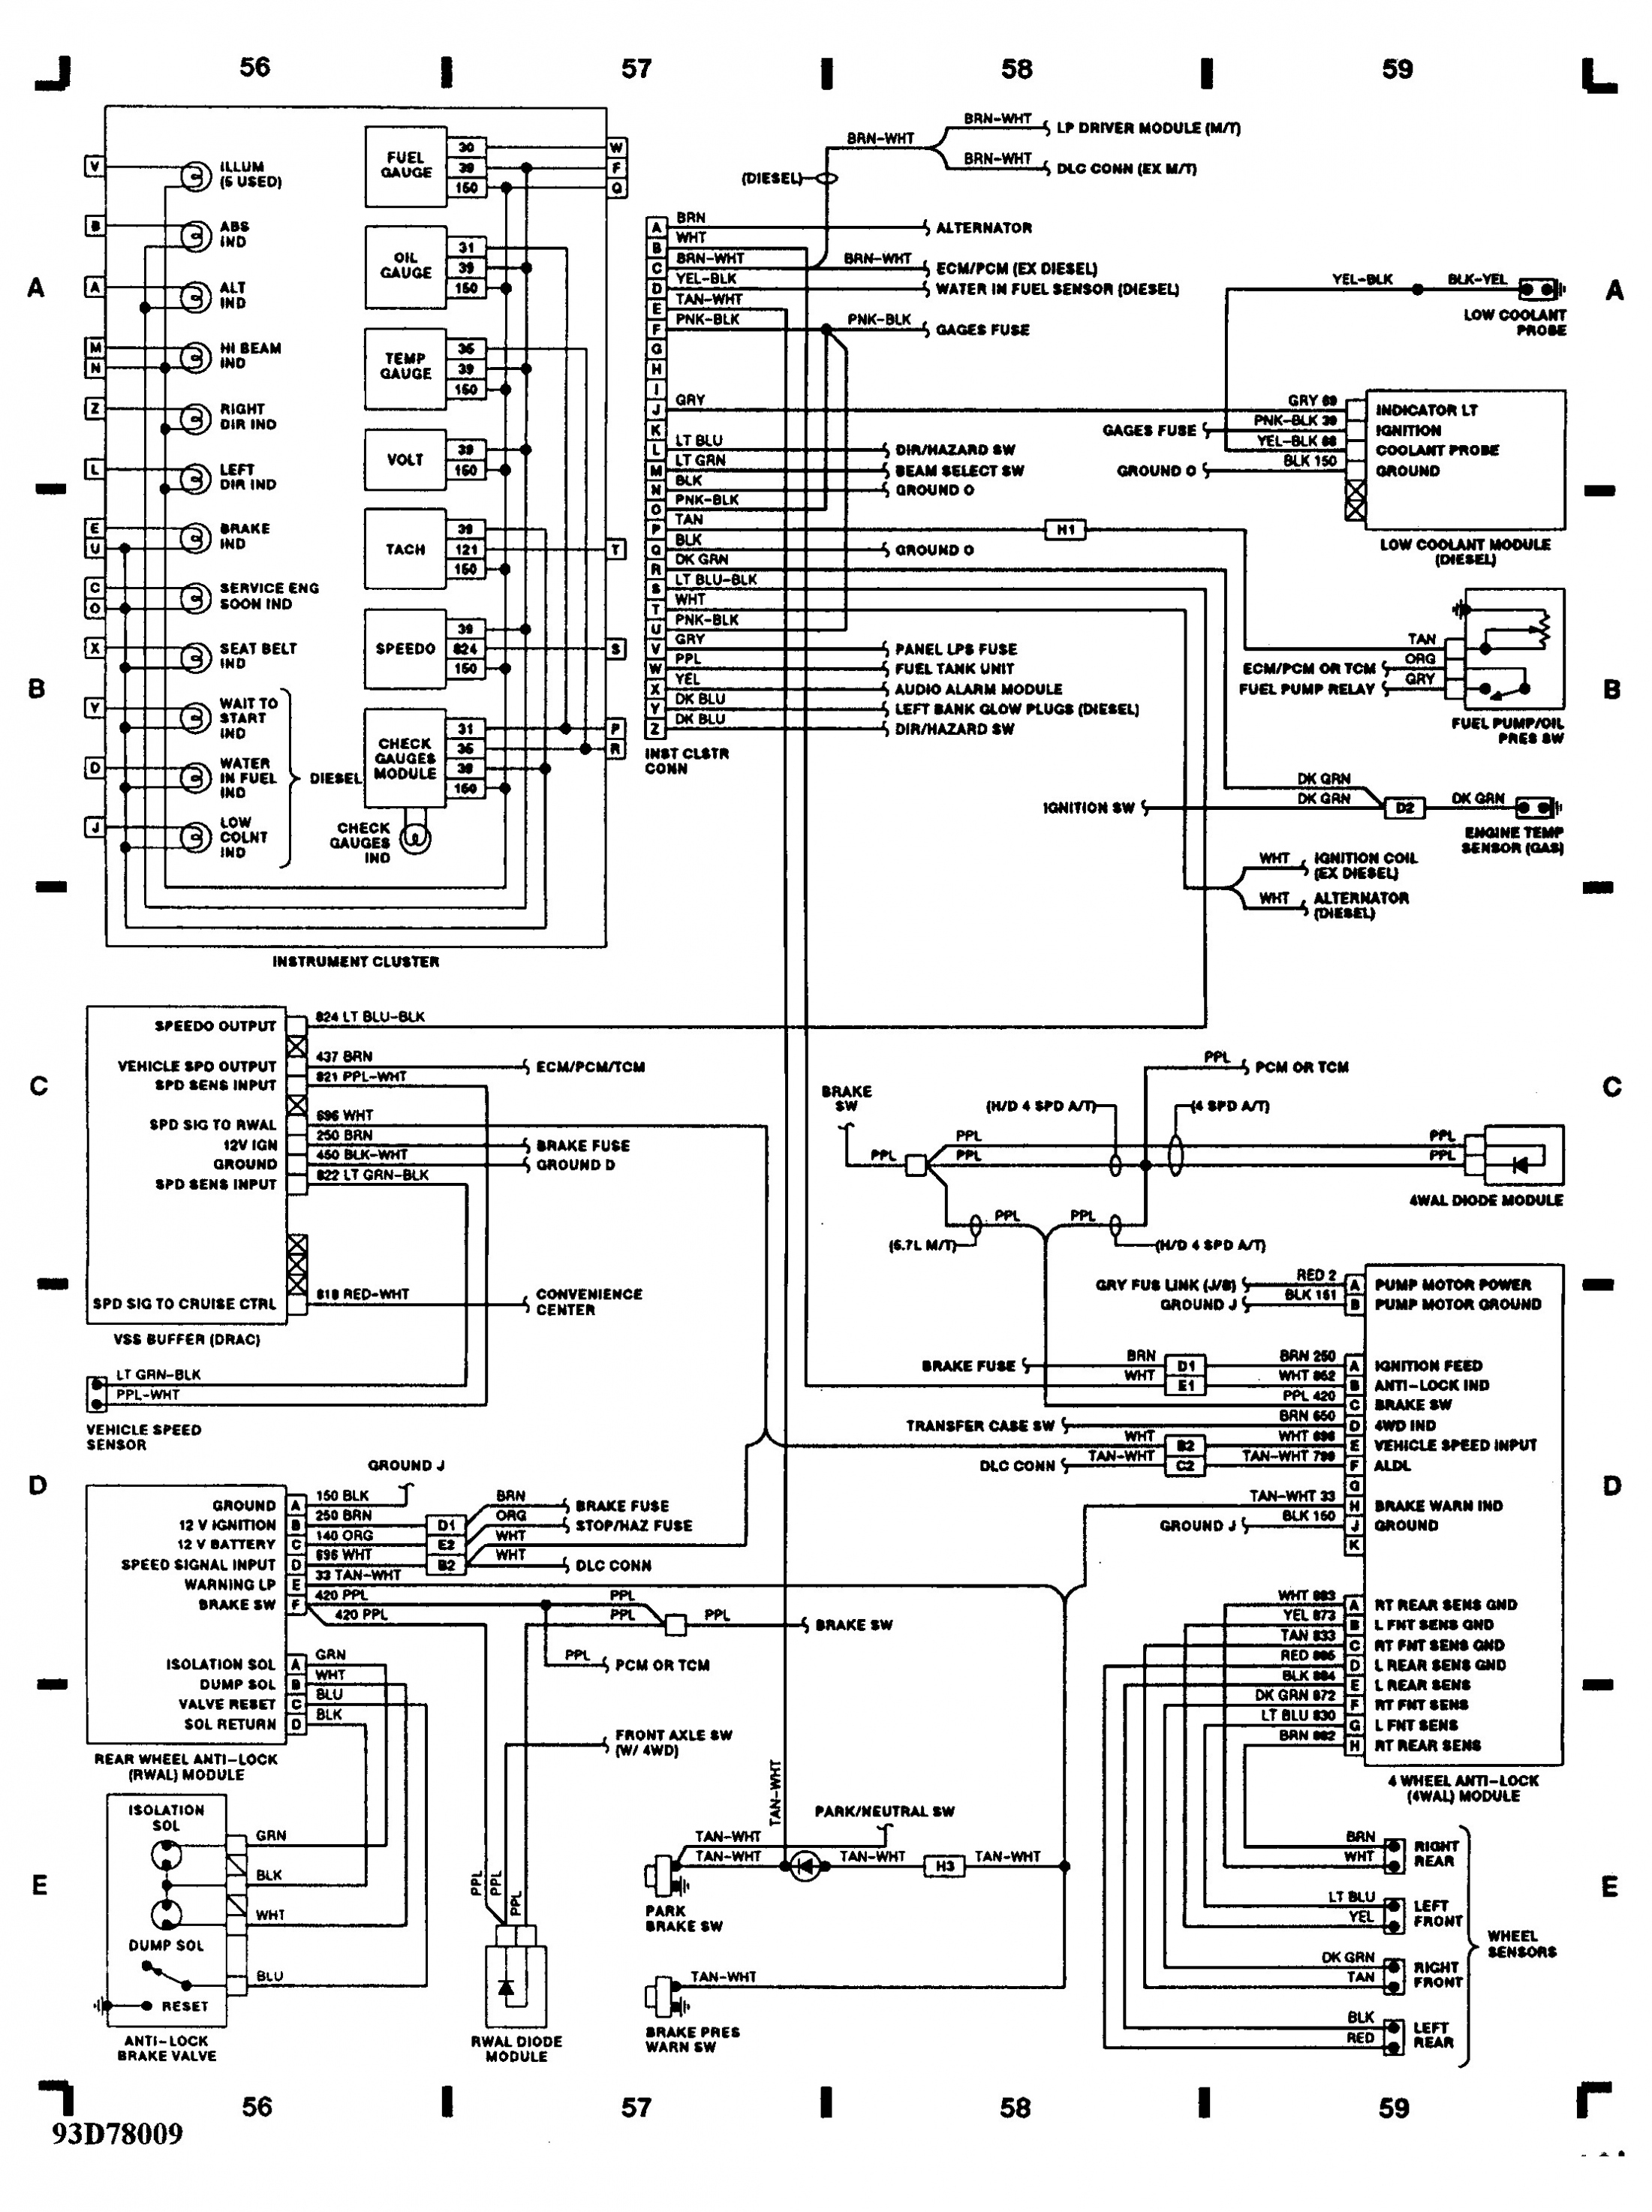 Dodge Ram Wiring Harness Diagram | Wiring Diagram